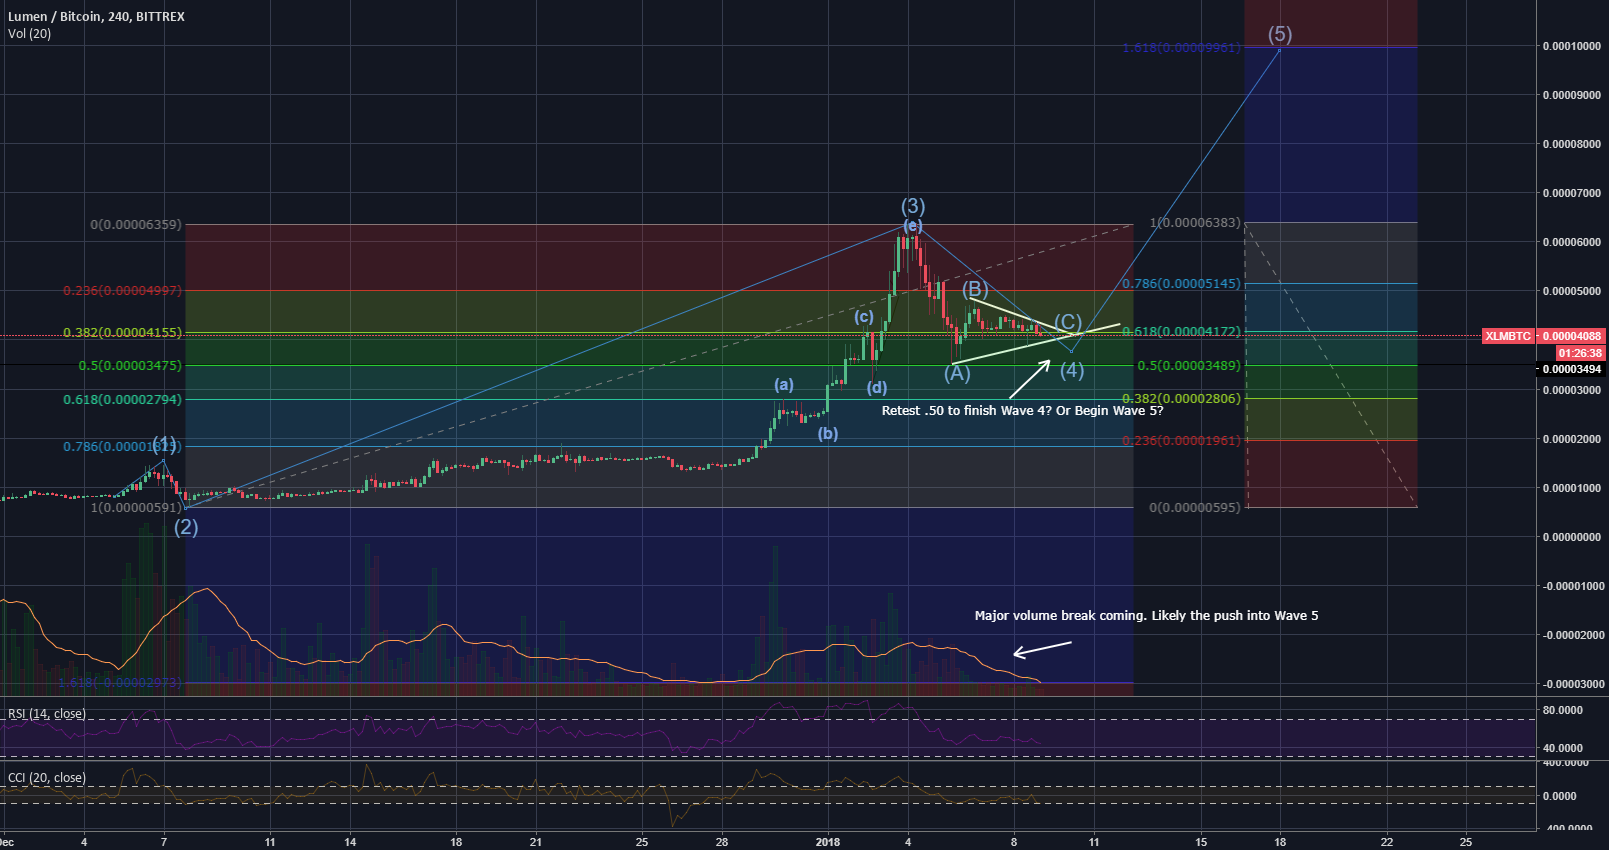 XLM Ready To Break Up Into Wave 5